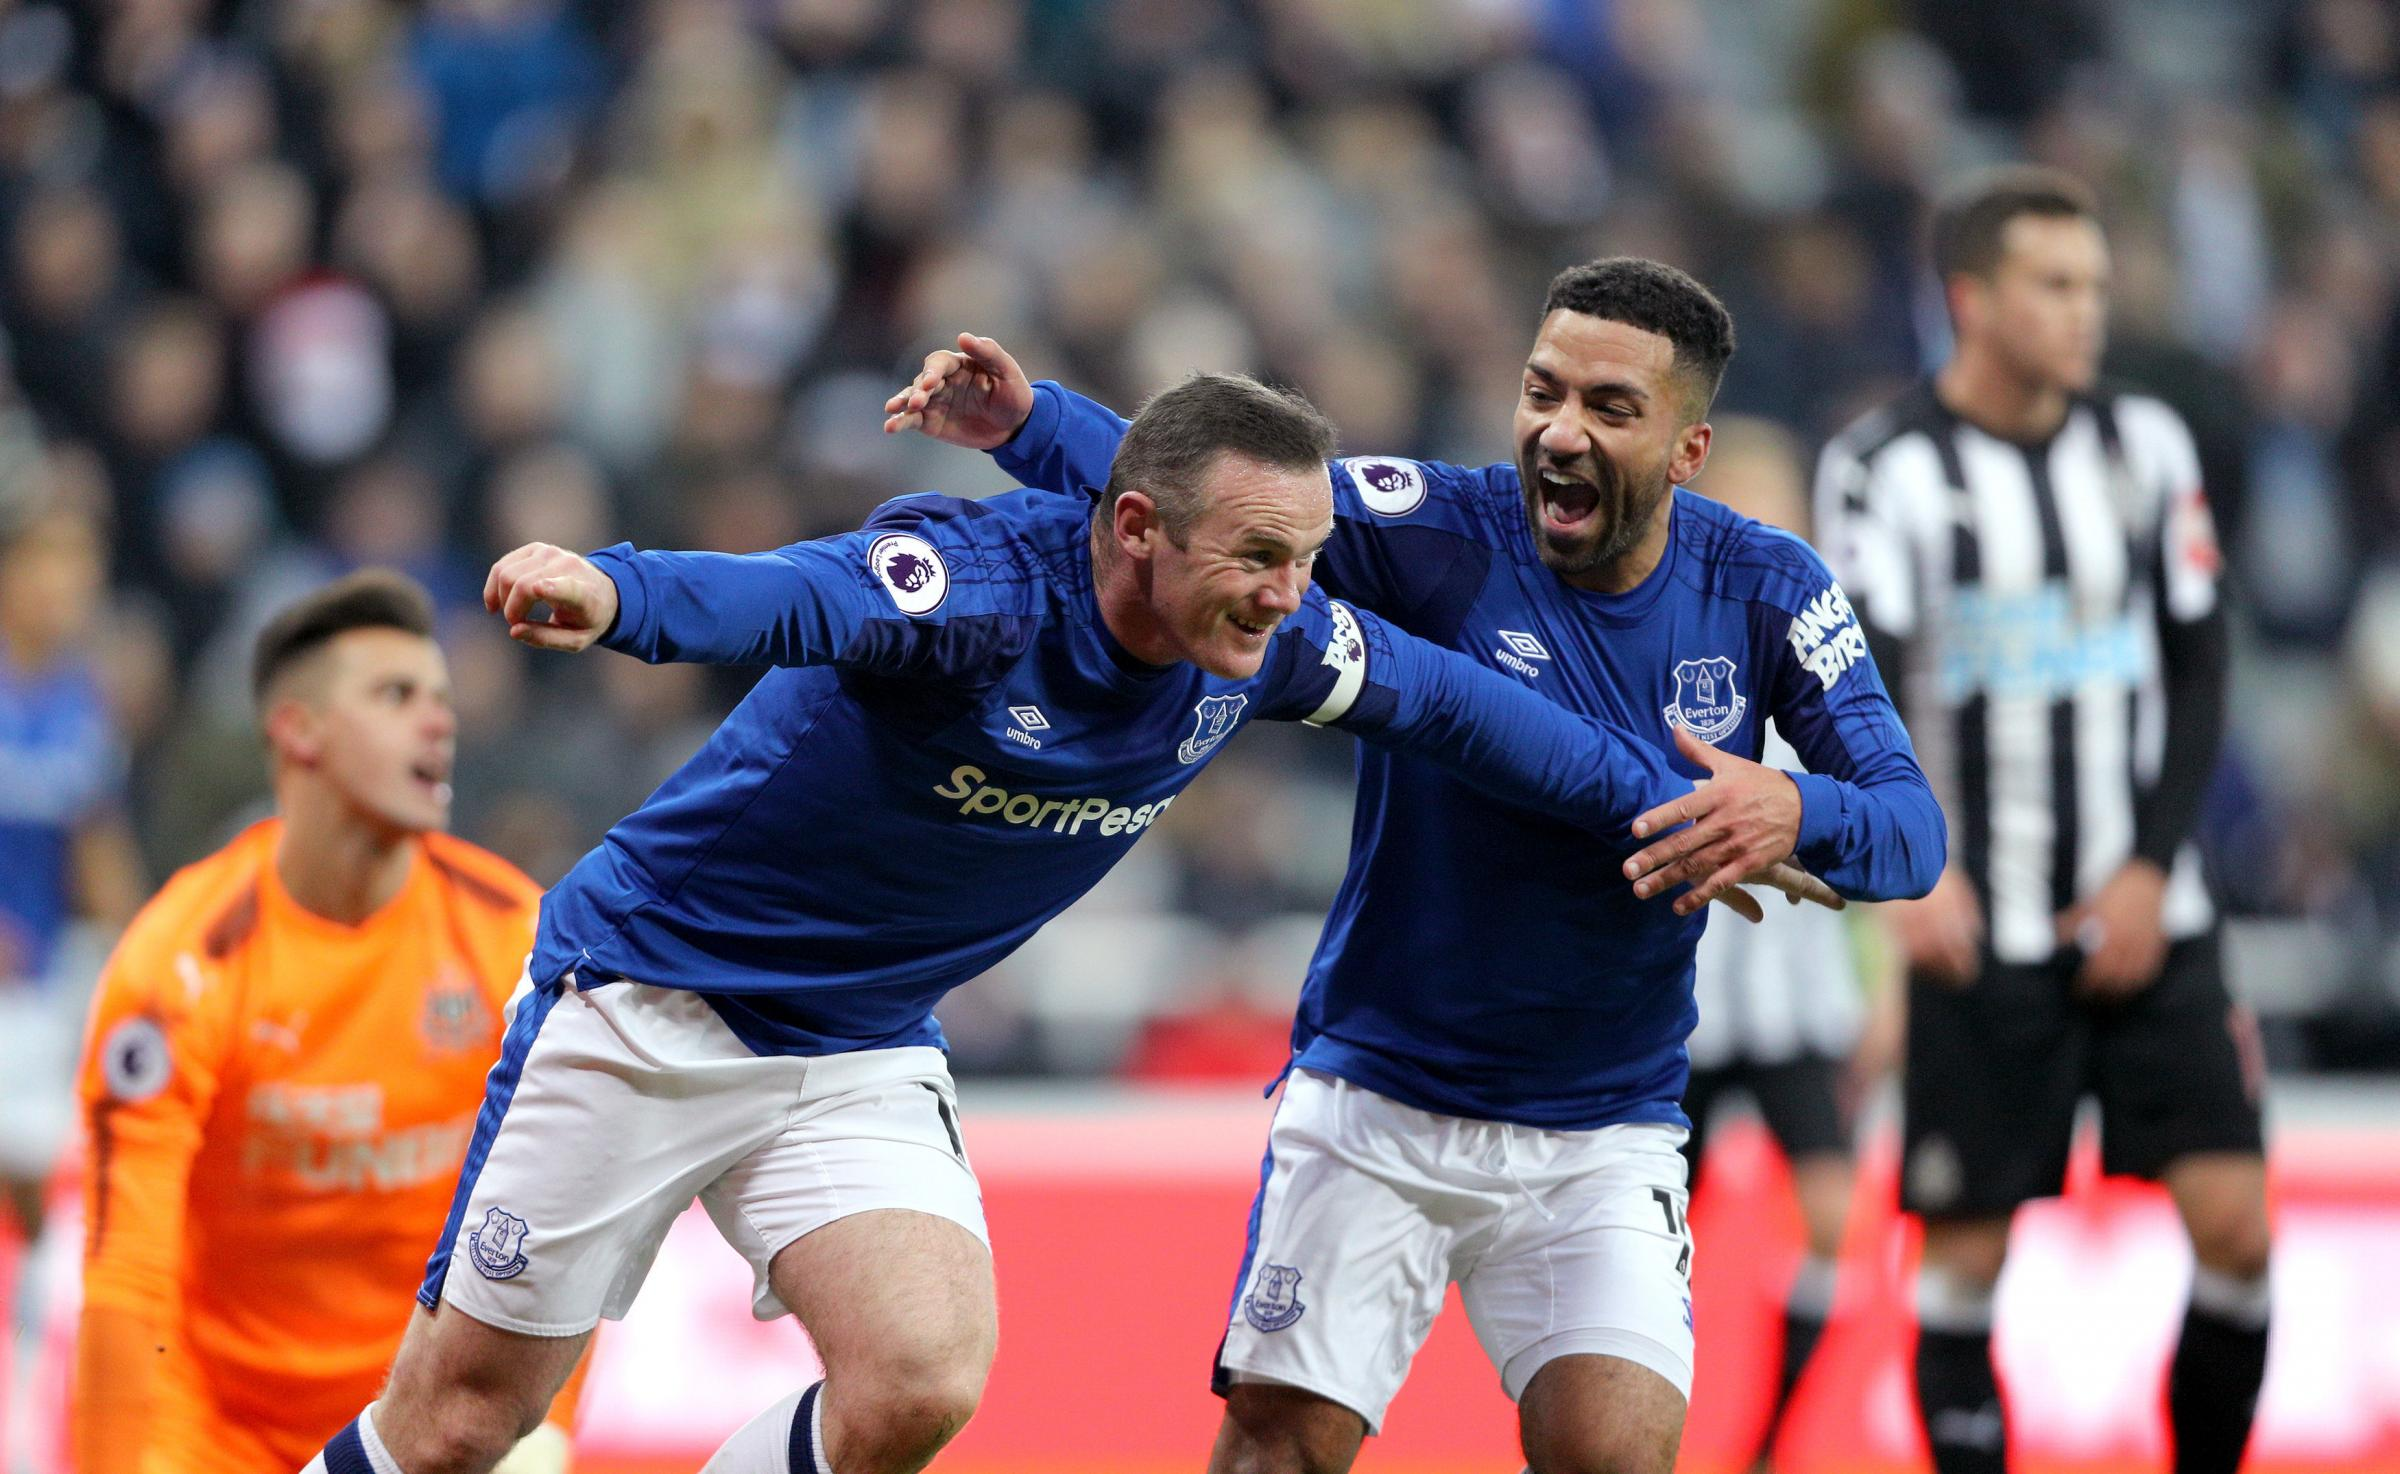 Everton's Wayne Rooney celebrates scoring his side's first goal of the game during the Premier League match at St James' Park, Newcastle. PRESS ASSOCIATION Photo. Picture date: Wednesday December 13, 2017. See PA story SOCCER Newcastle. Photo